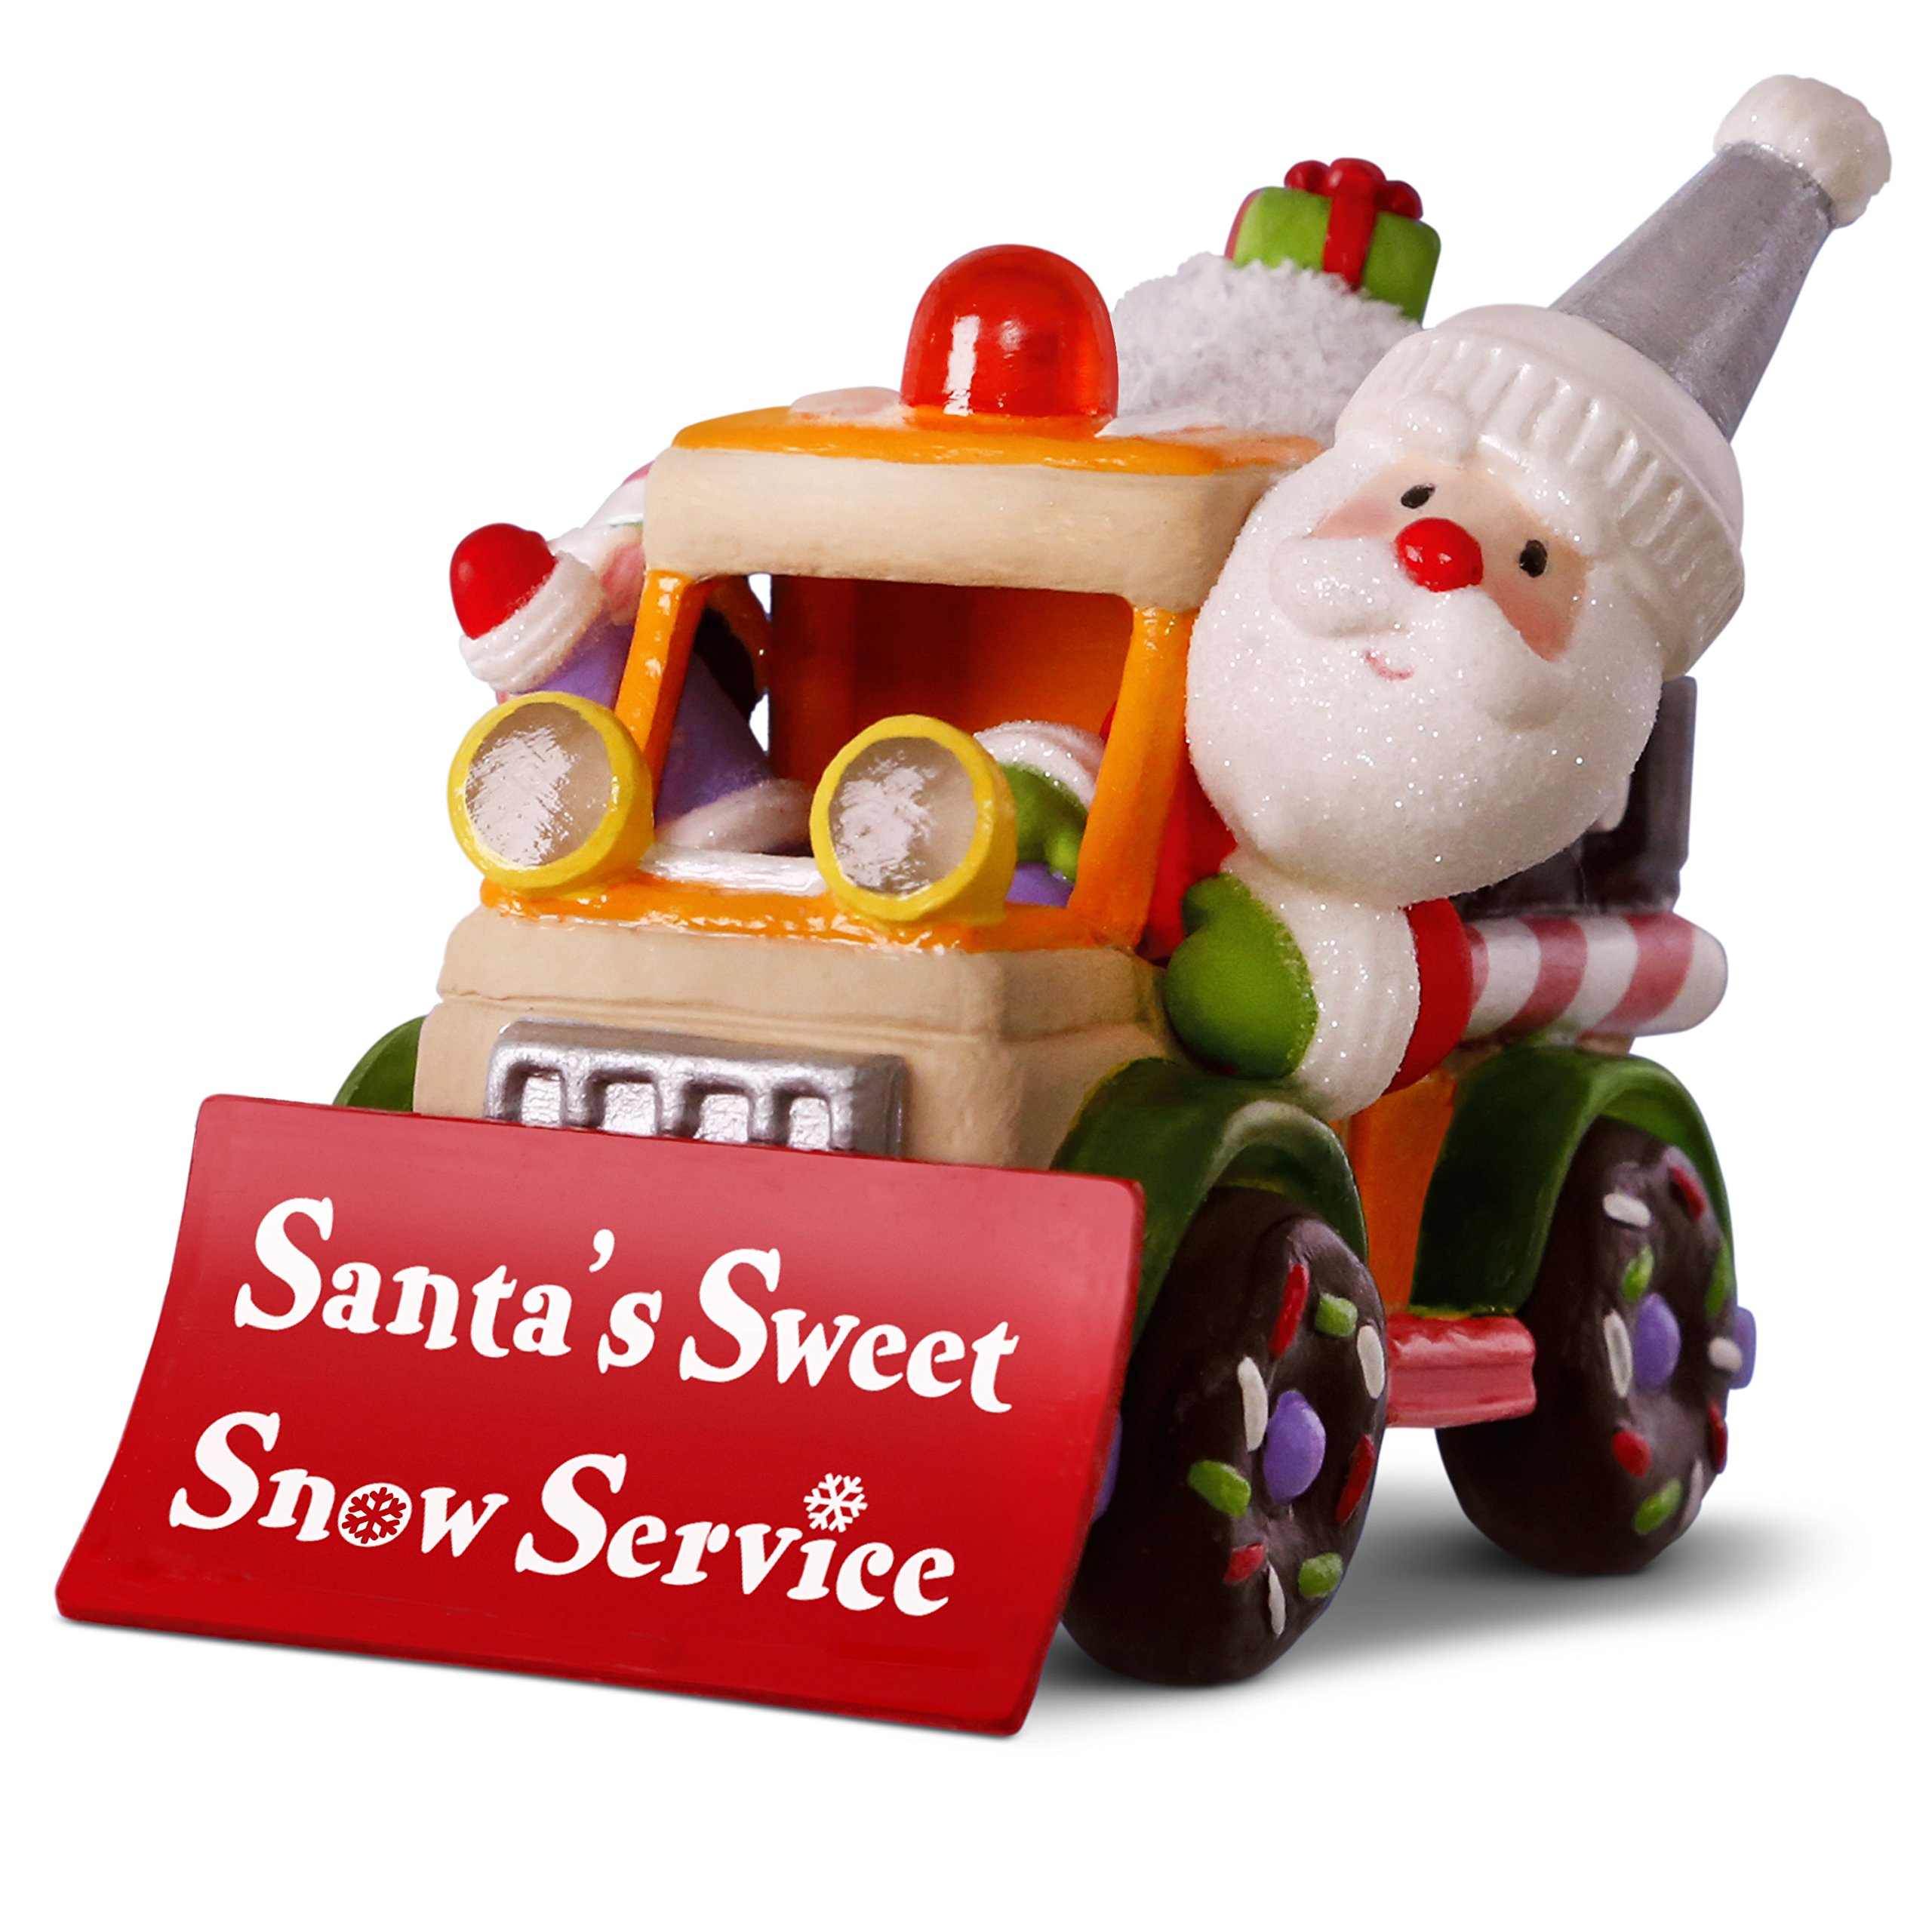 Hallmark Christmas Ornament Change Title Keepsake 2018 Year Dated, Santa's Sweet Snow Plow with Music and Light